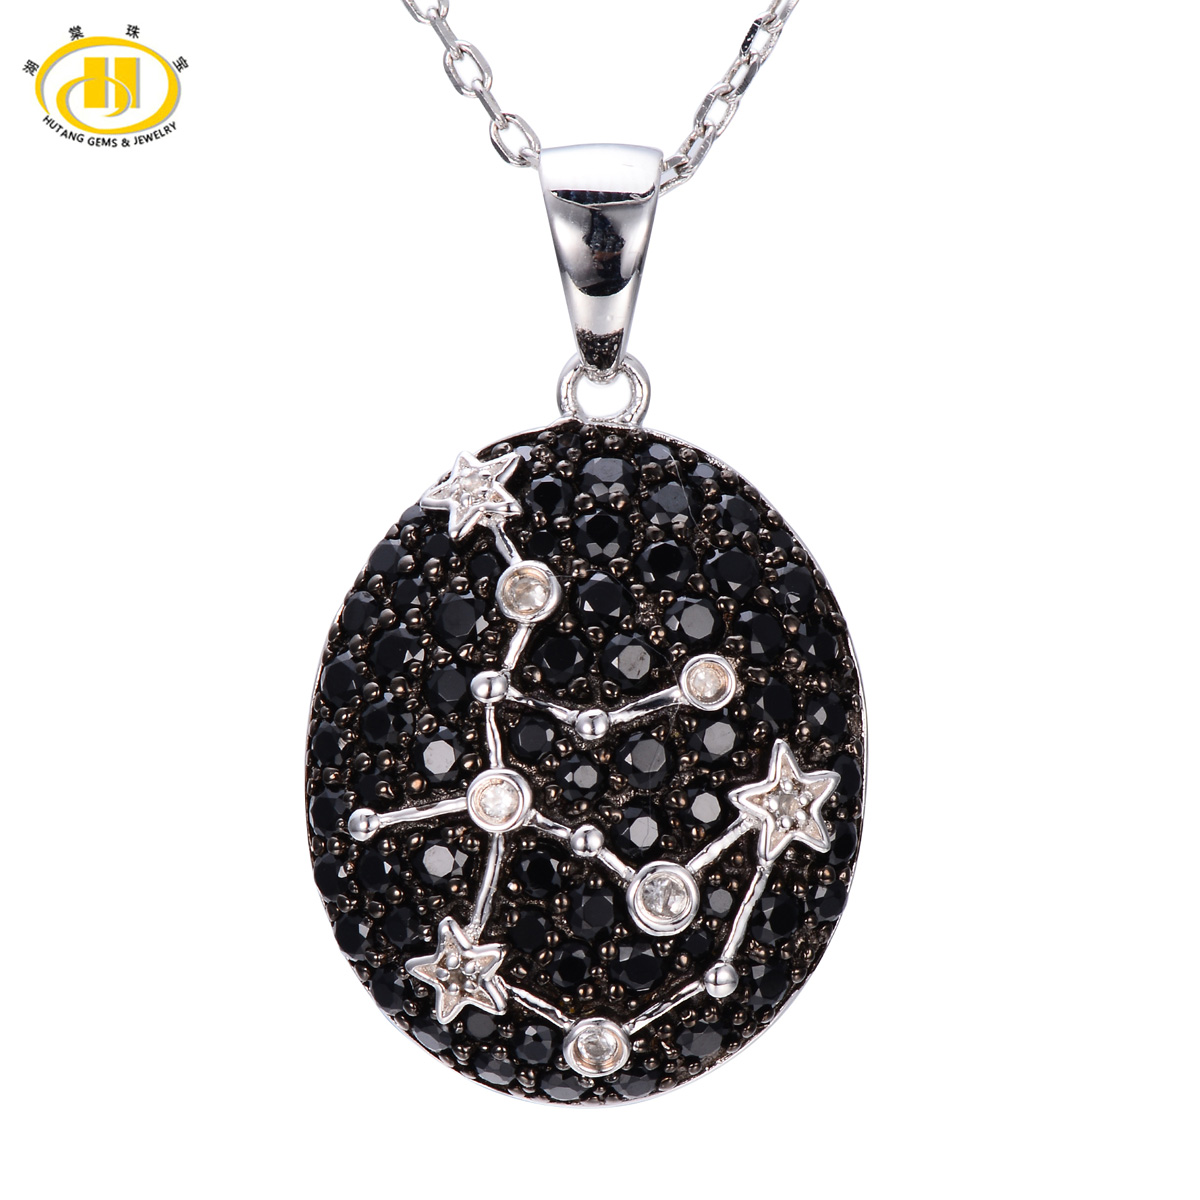 Hutang Fine Jewelry Chokers Women Natural Black Spinel White Topaz Necklace Pendant 925 Sterling Silver Aquarius Constellation все цены